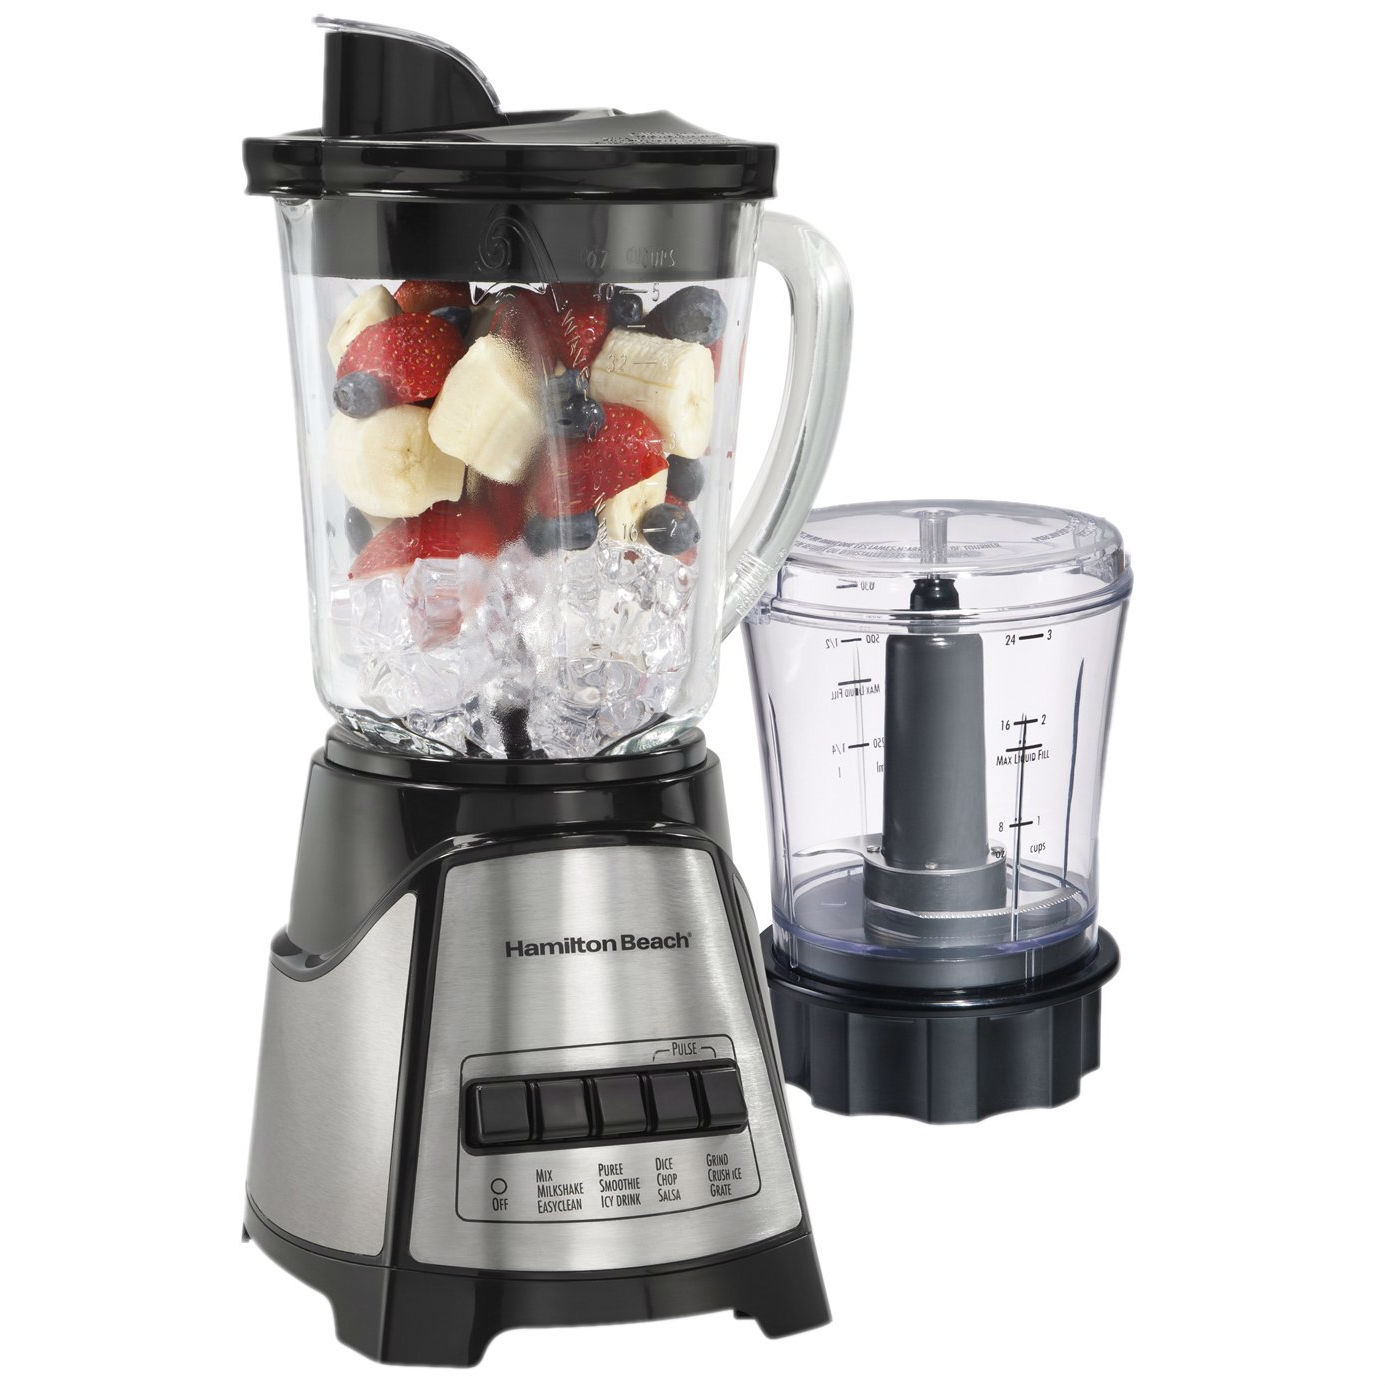 This 700-Watt Countertop Blender Food Chopper with Stainless Steel Blades would be a great addition to your home. Revolutionary Wave-Action system continuously pulls mixture down into the blades for smooth results every time.